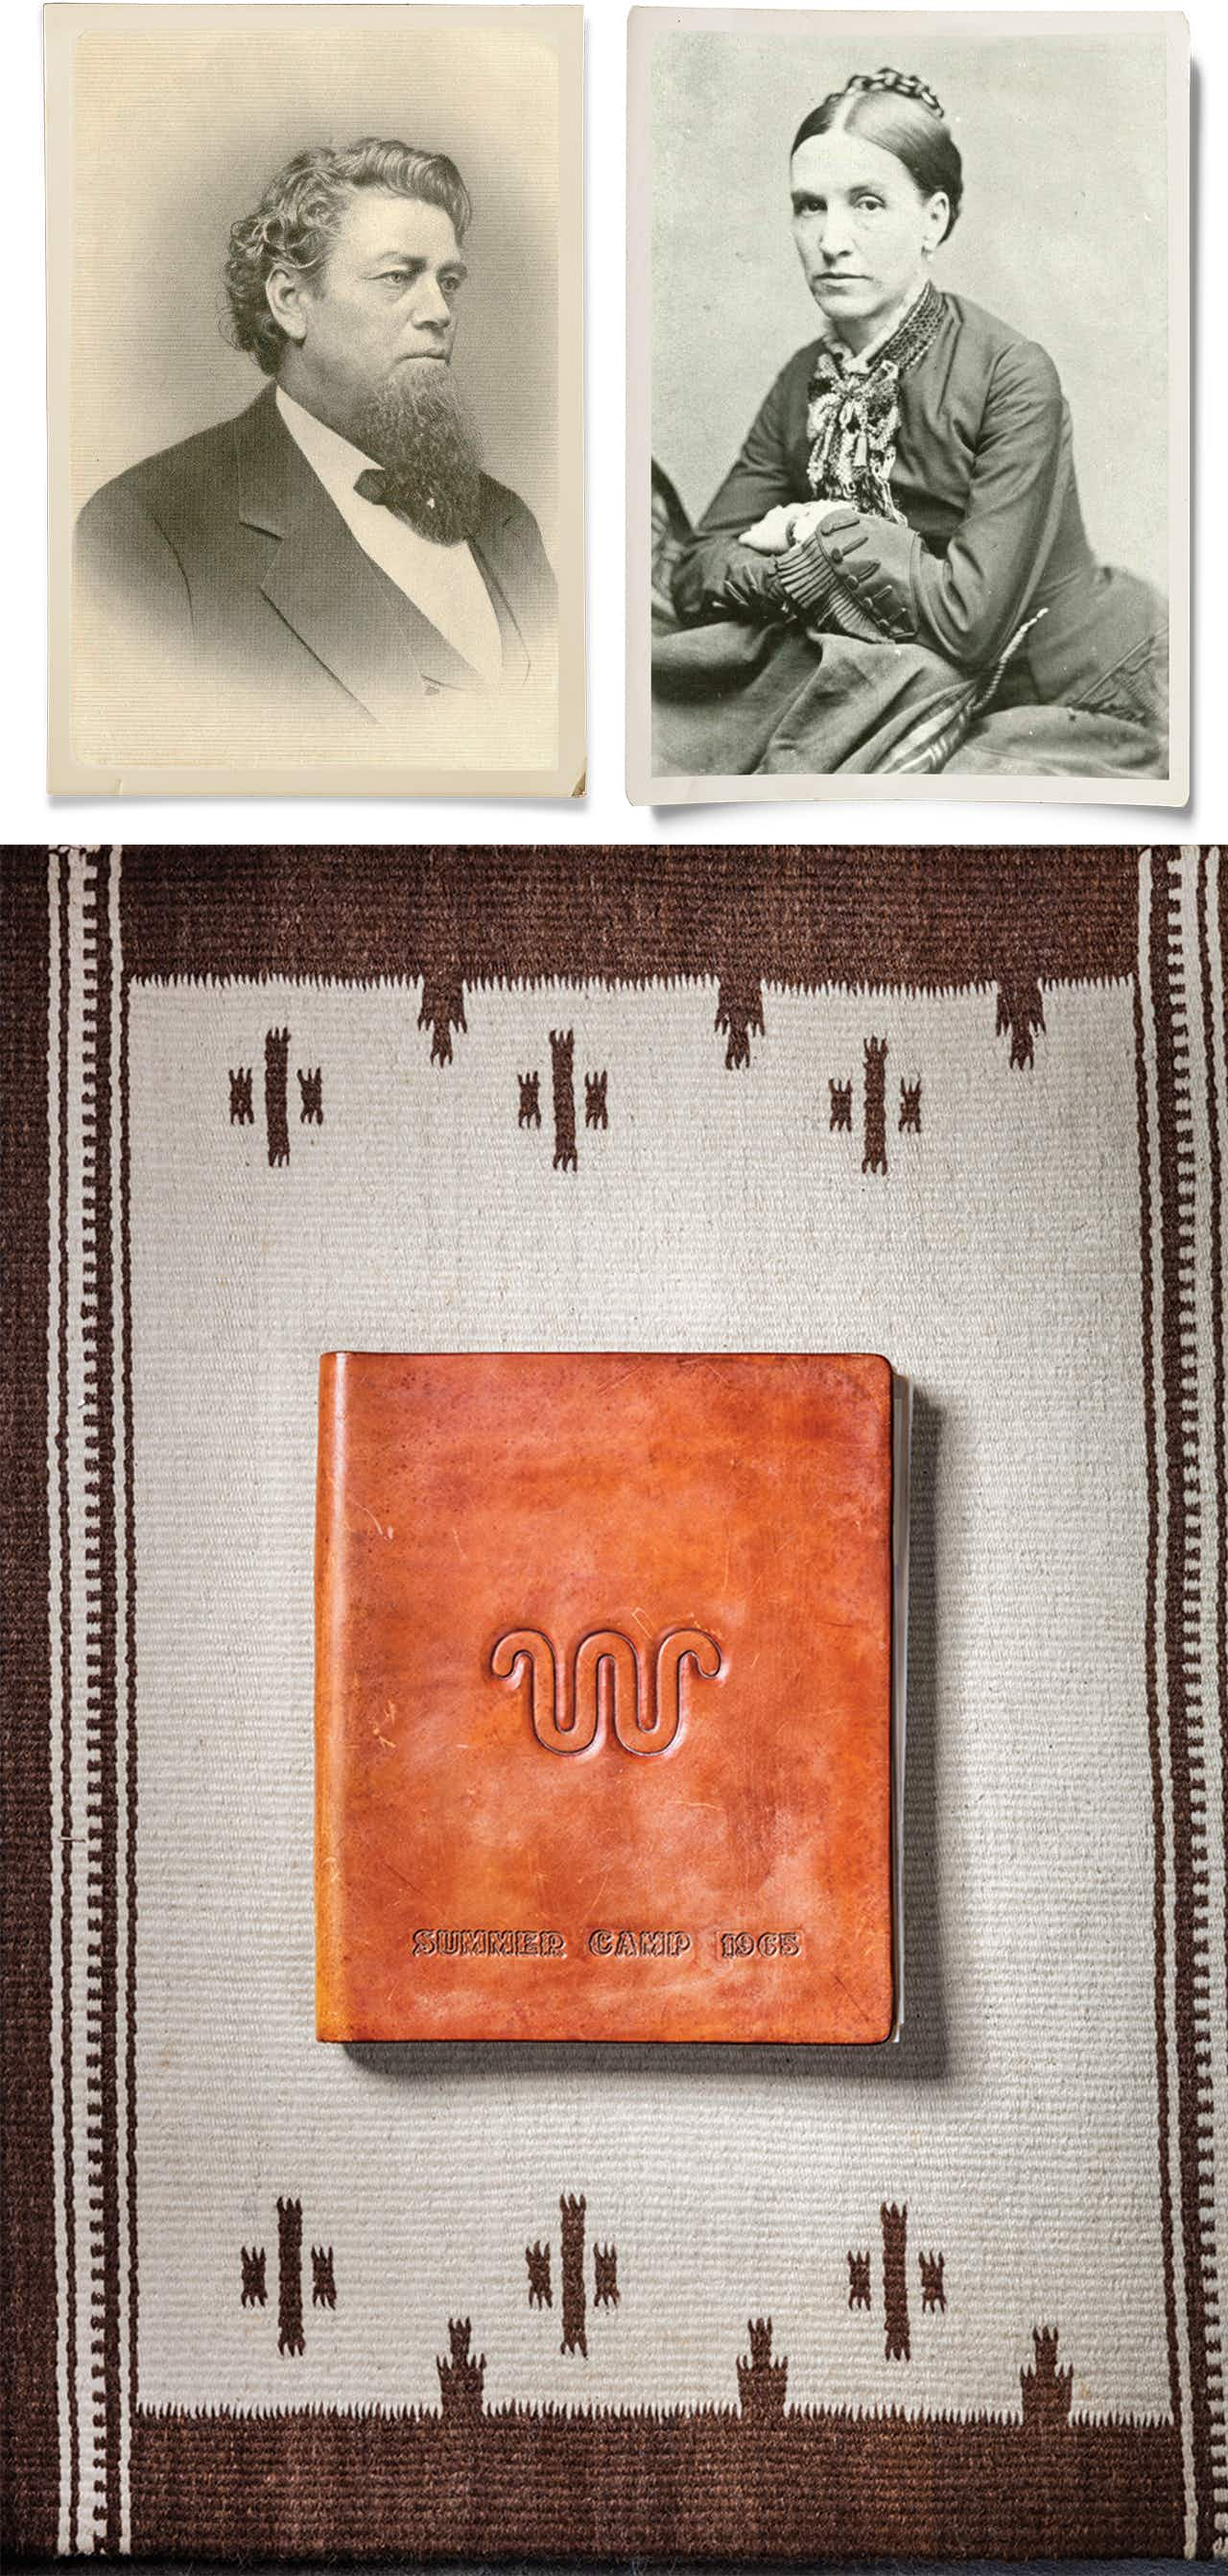 Images of Richard from 1880 and Henrietta from 1871 appear in the house along with King Ranch family photo albums.